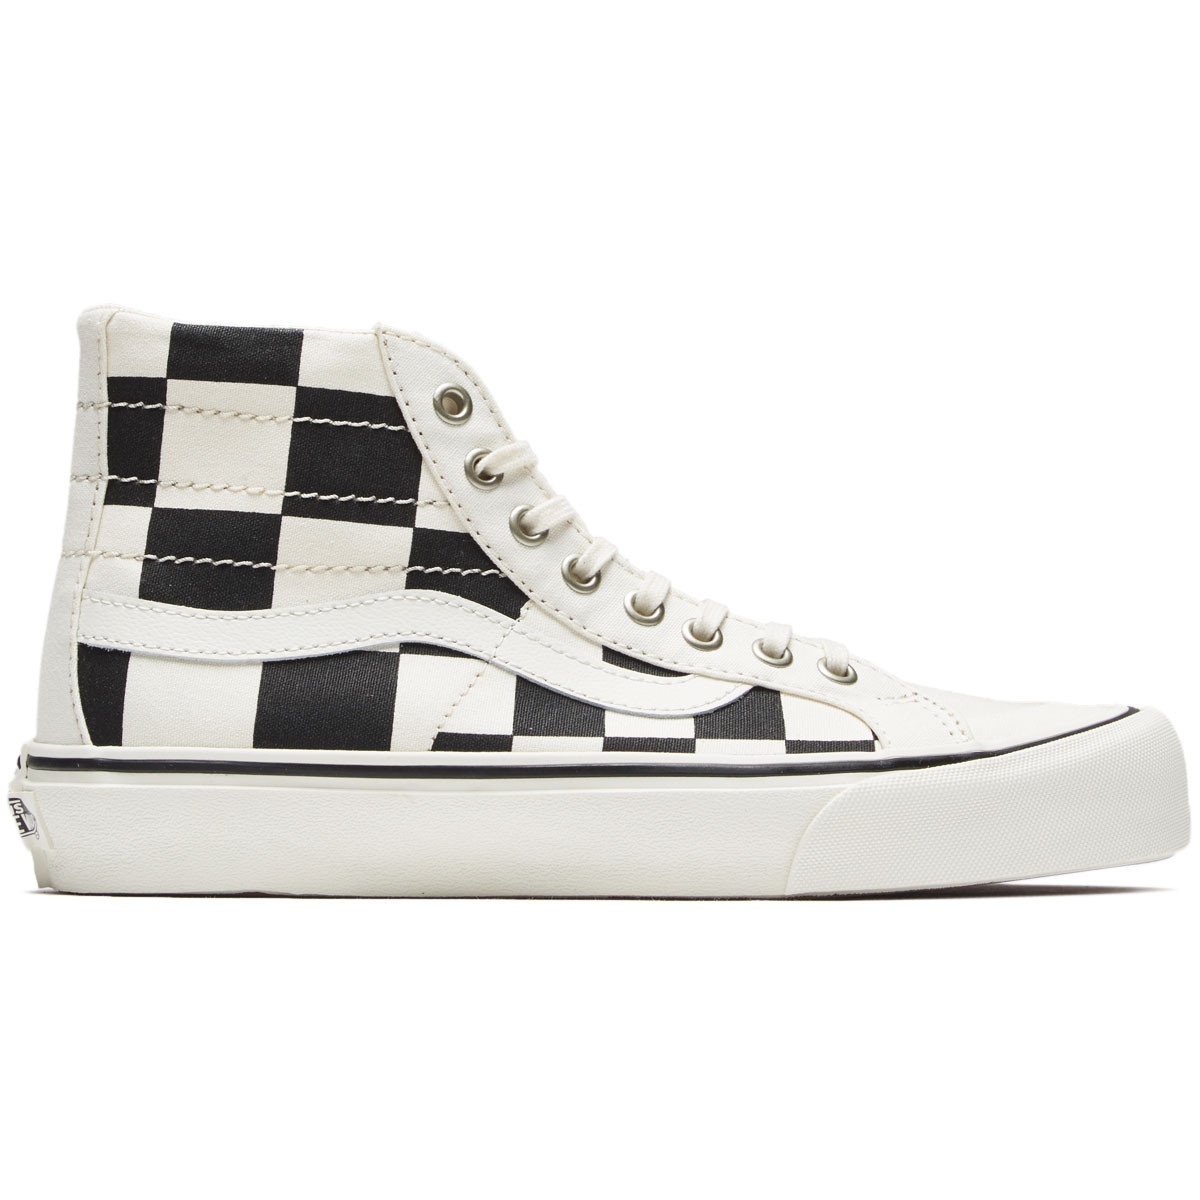 e160e41b7c Vans Womens Sk8-Hi 138 Decon SF Shoes - Black White - 4.0